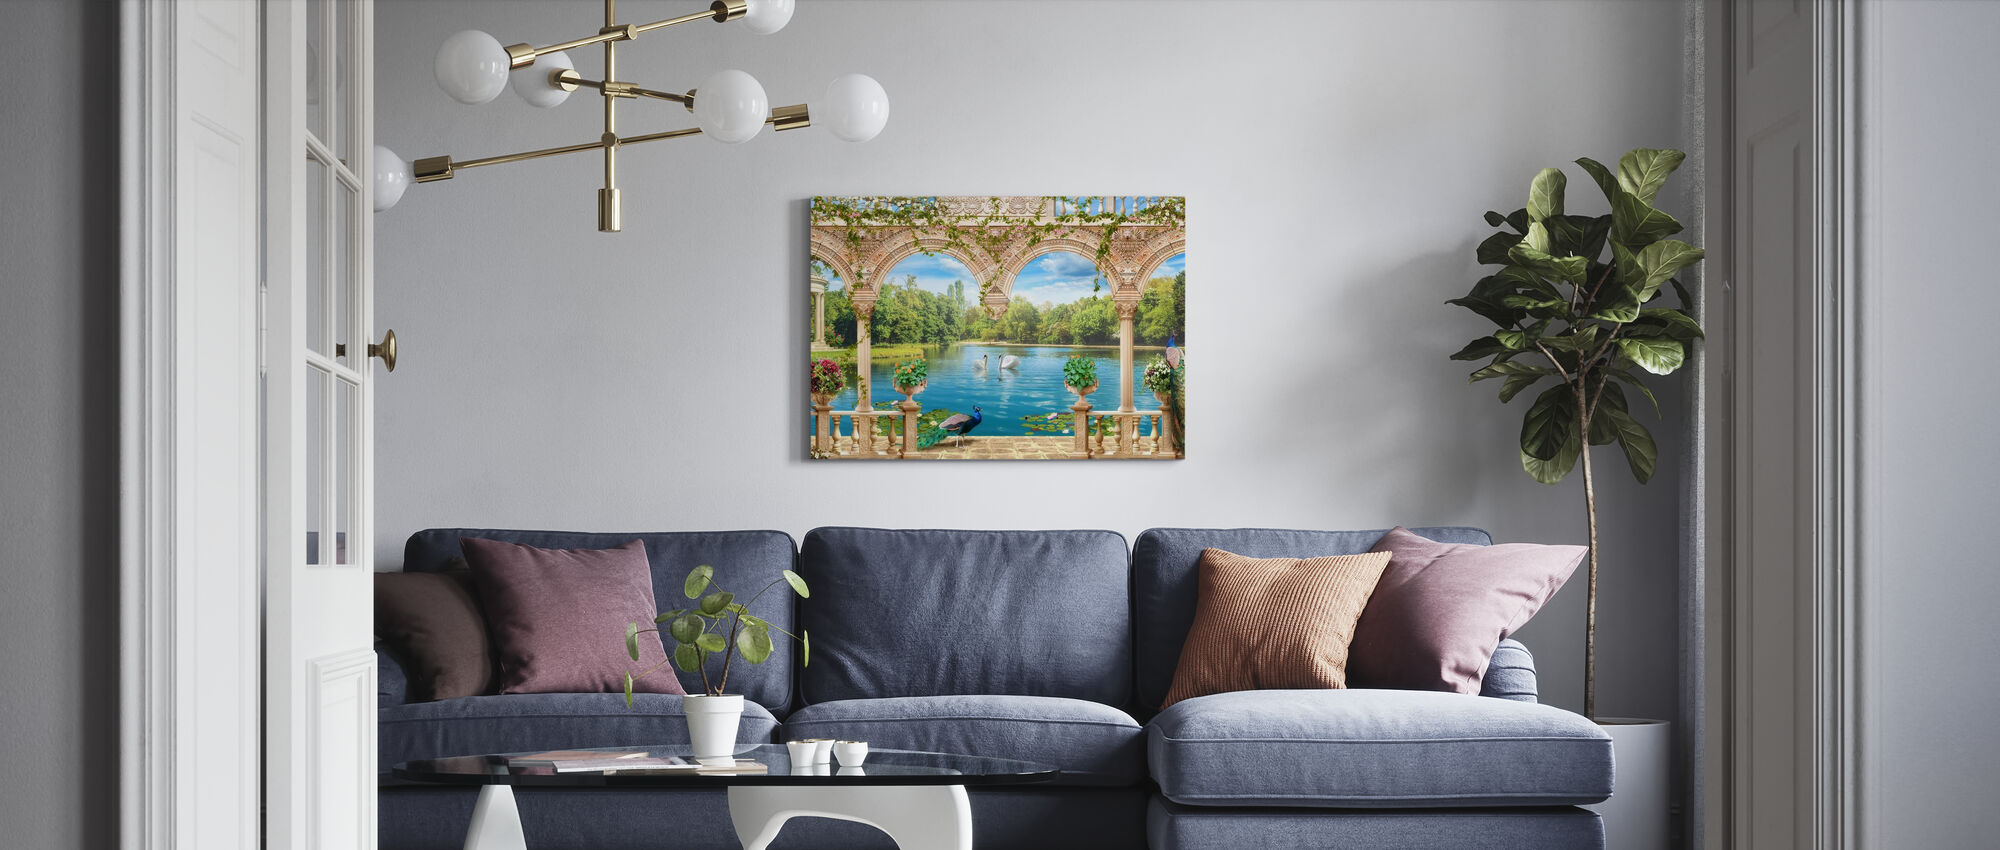 Swans in Park - Canvas print - Living Room